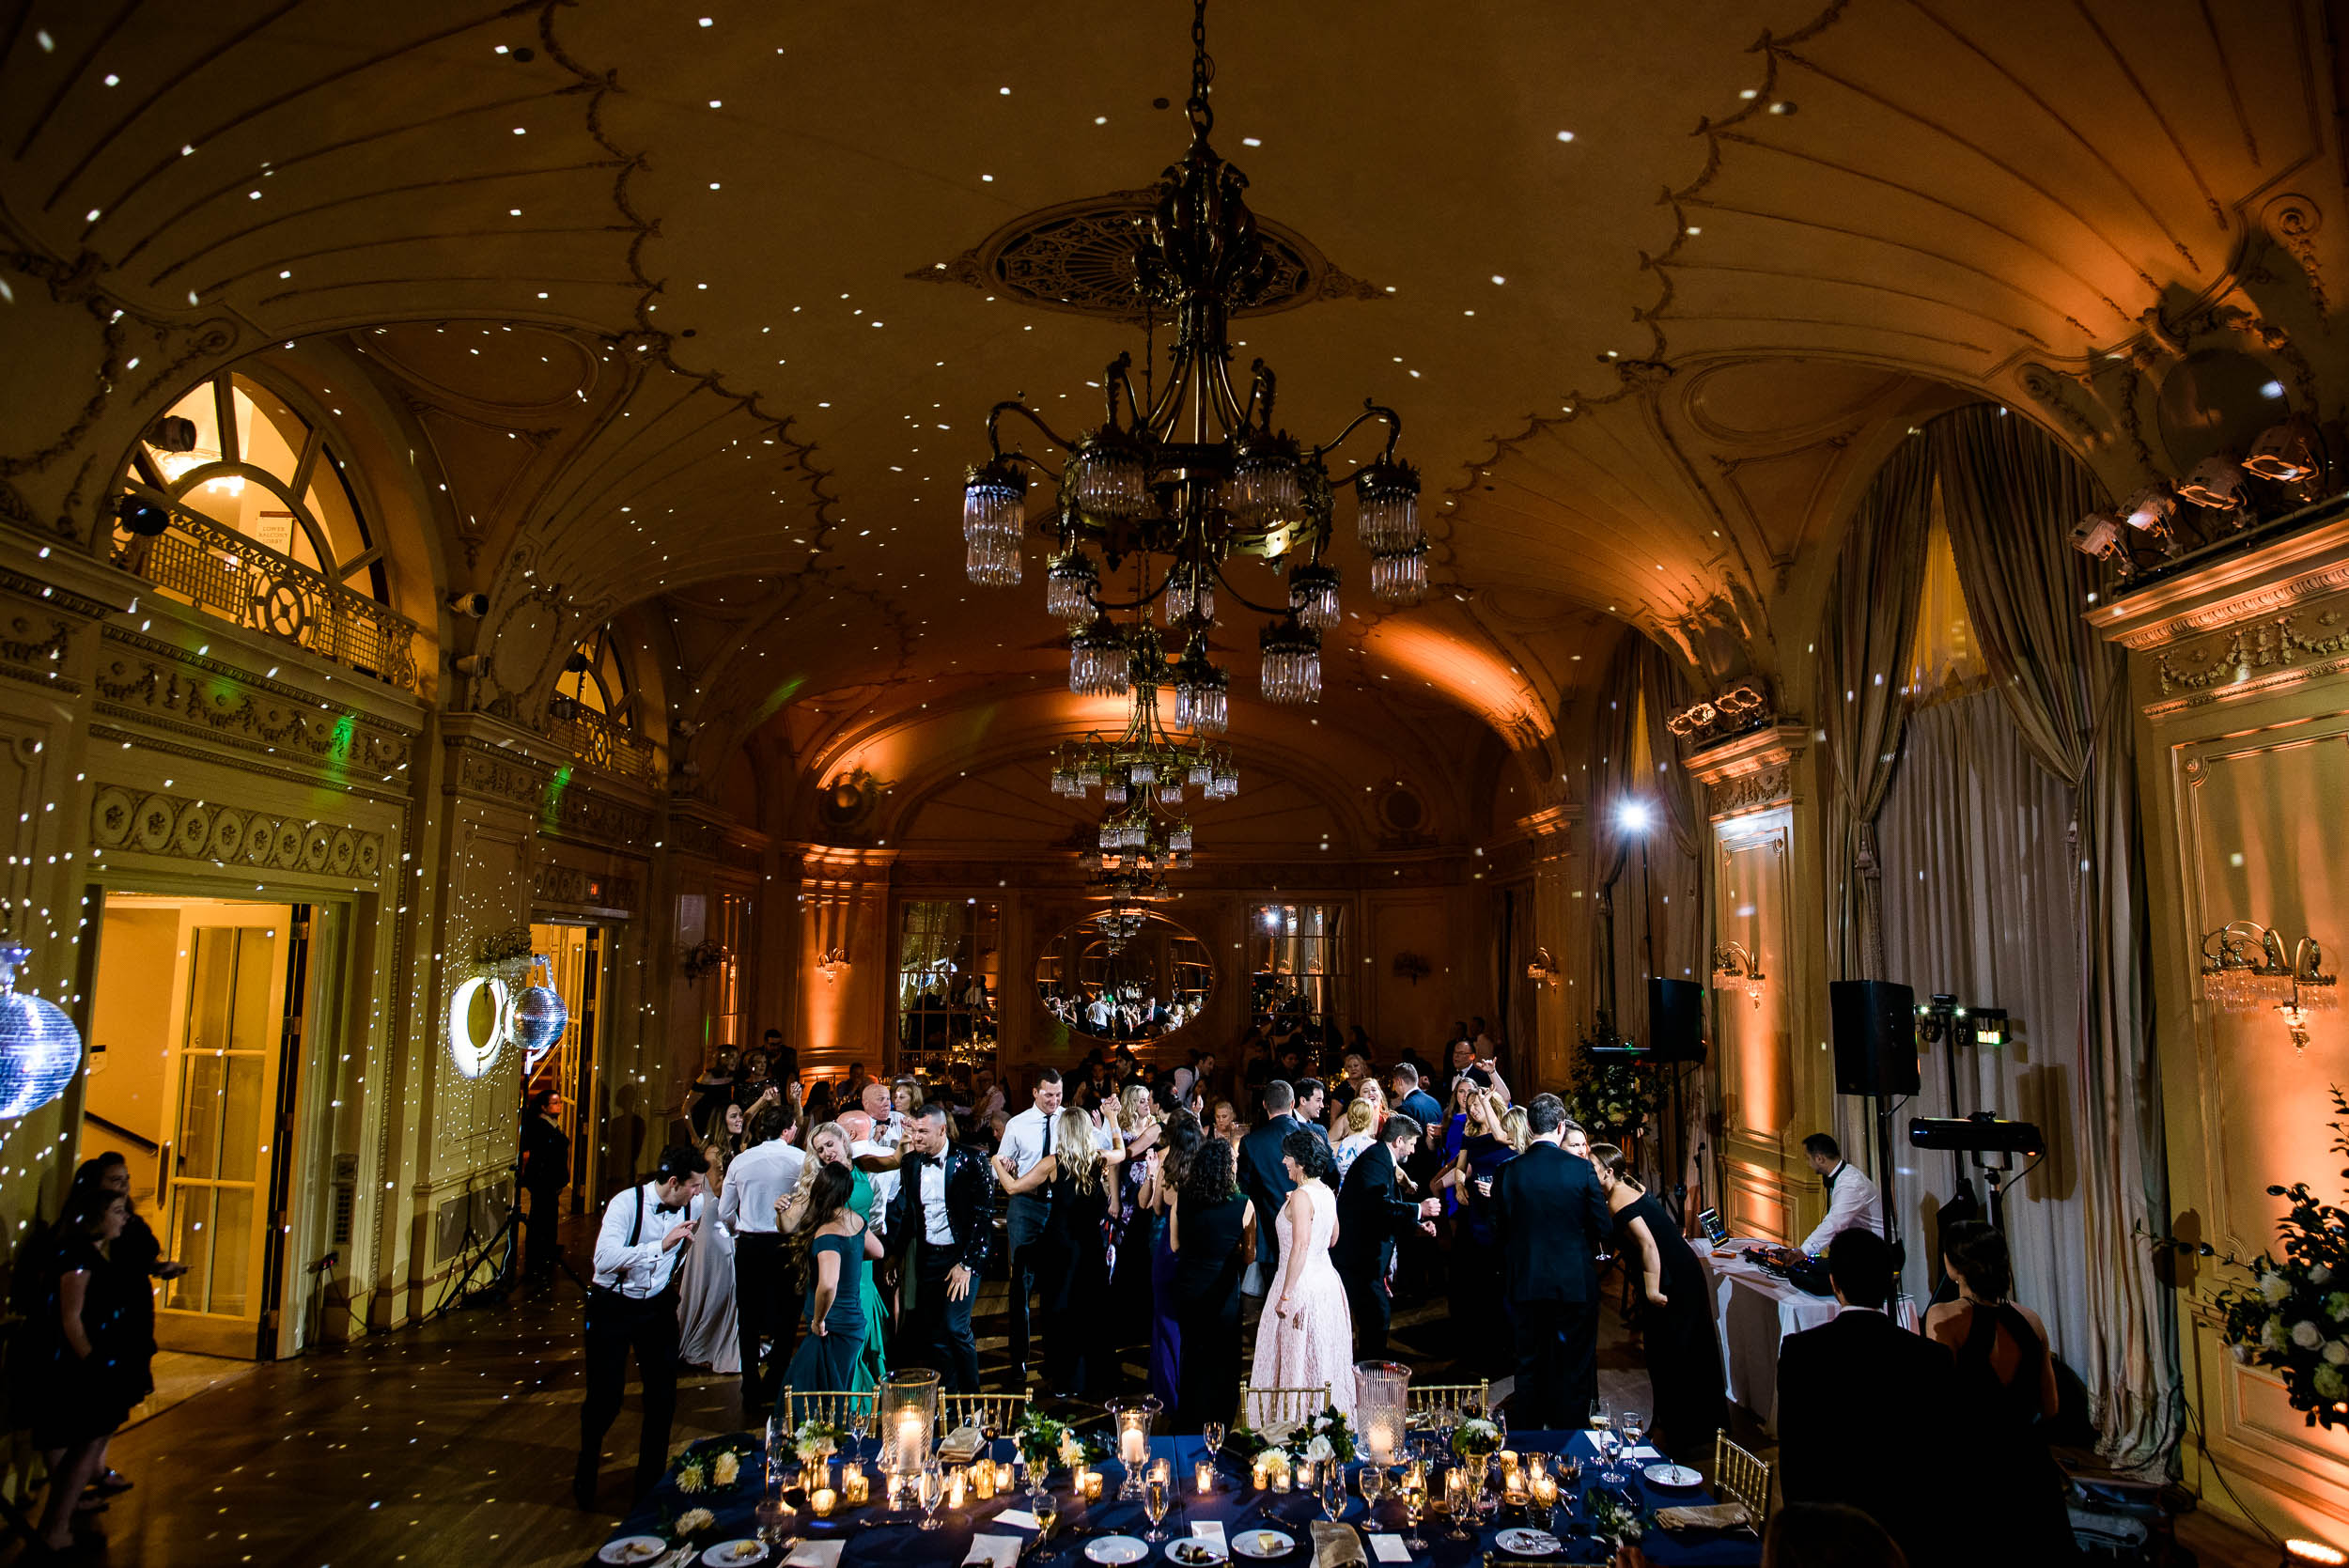 Guests dancing at wedding reception for luxurious fall wedding at the Chicago Symphony Center captured by J. Brown Photography. See more wedding ideas at jbrownphotography.com!